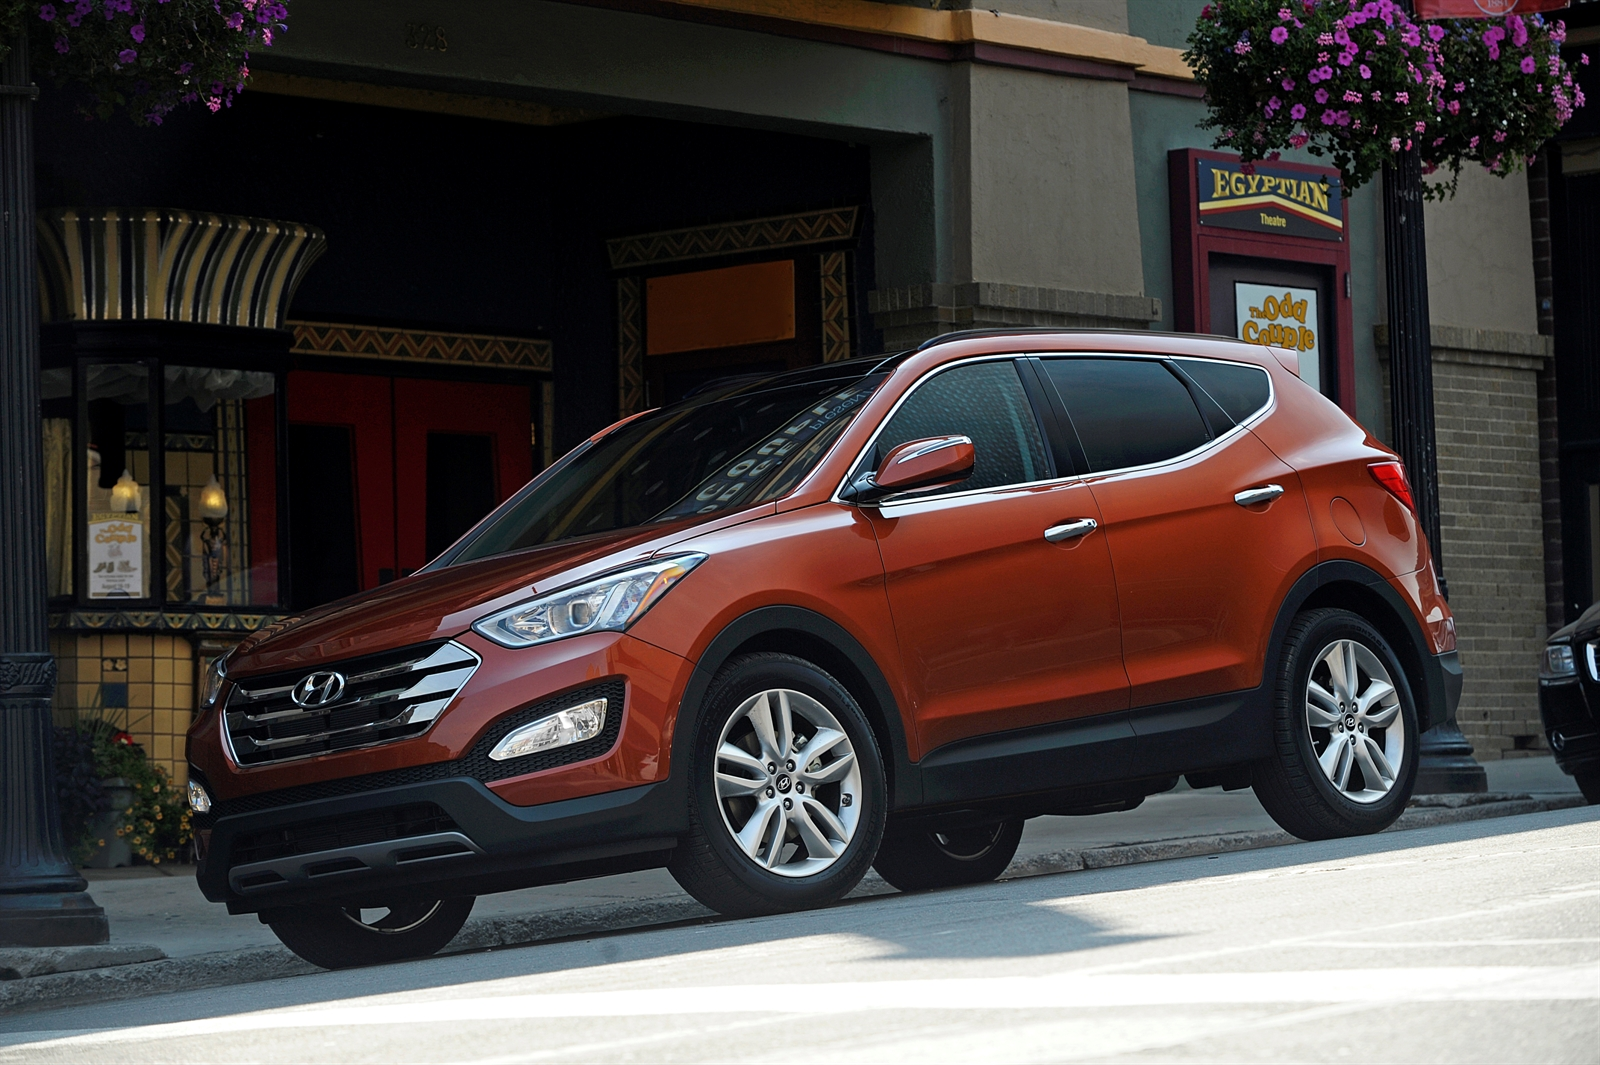 2014 hyundai santa fe performance review the car connection. Black Bedroom Furniture Sets. Home Design Ideas